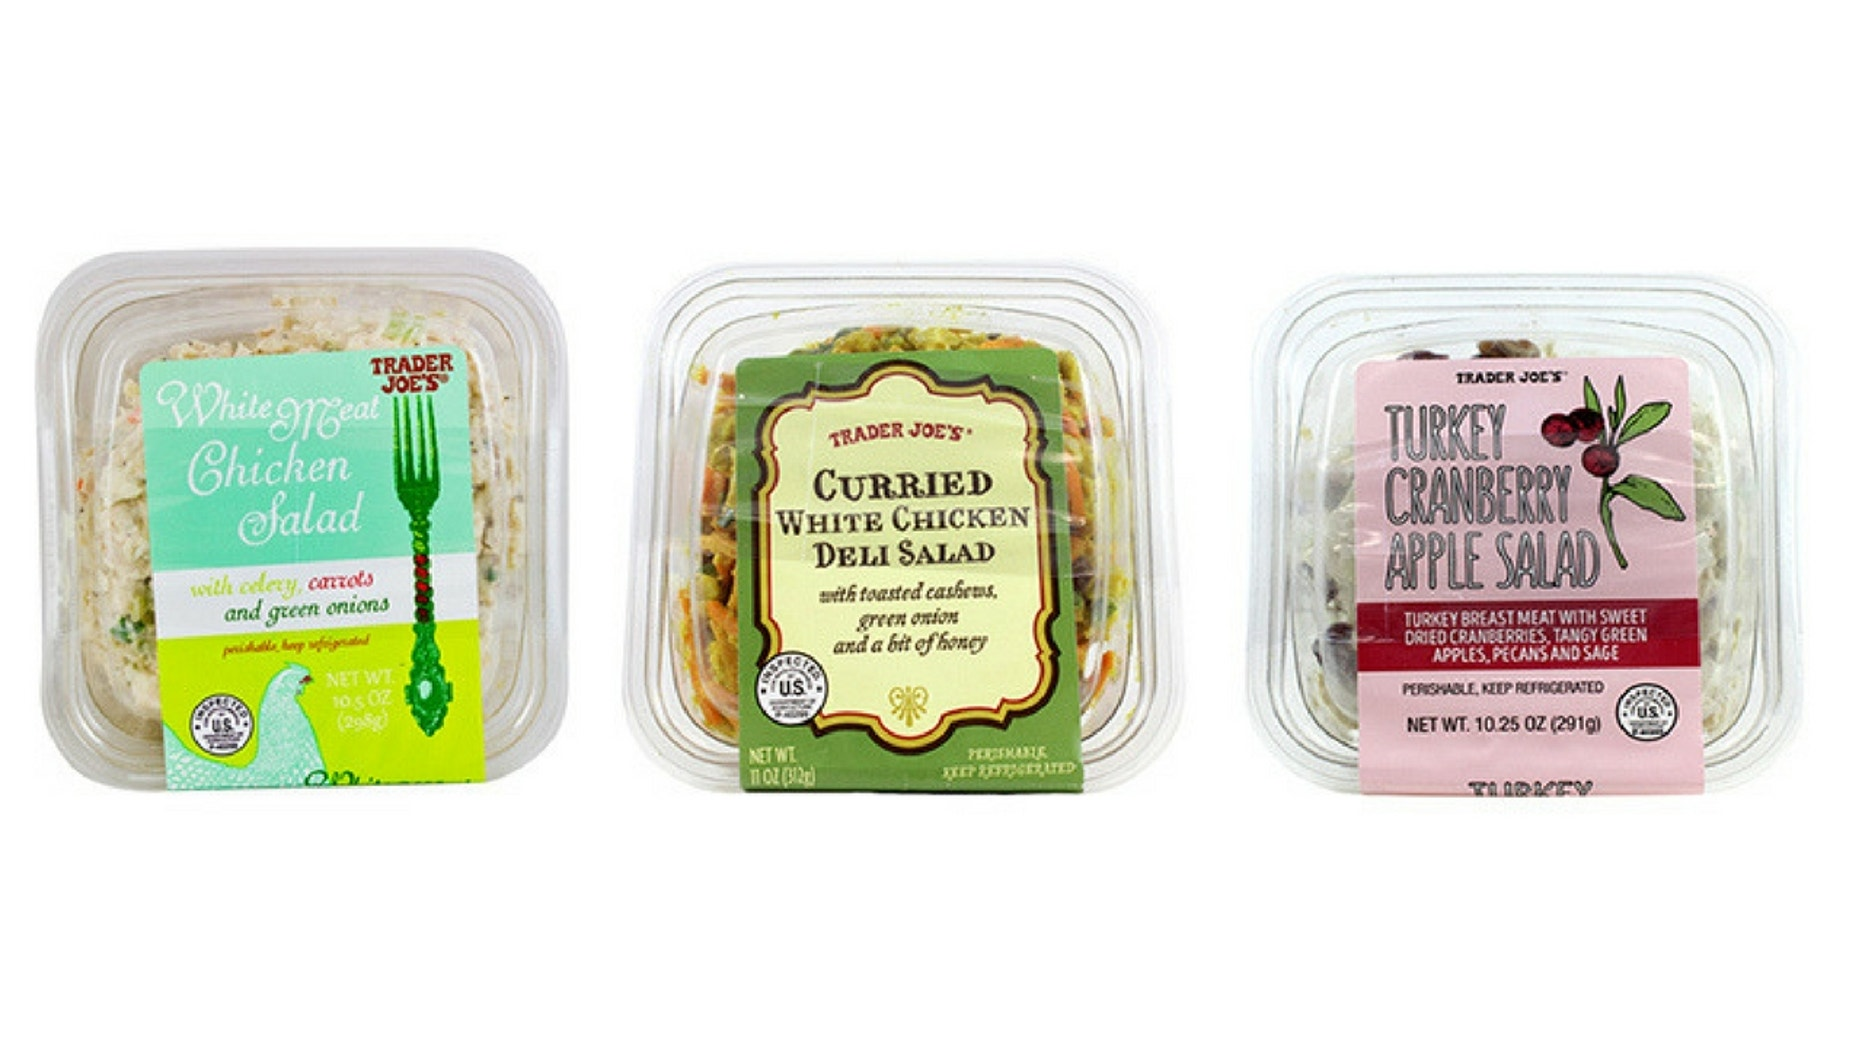 Trader Joe's recalled several pacakged salads after a supplier said there may be shards of glass or hard plastic in them.